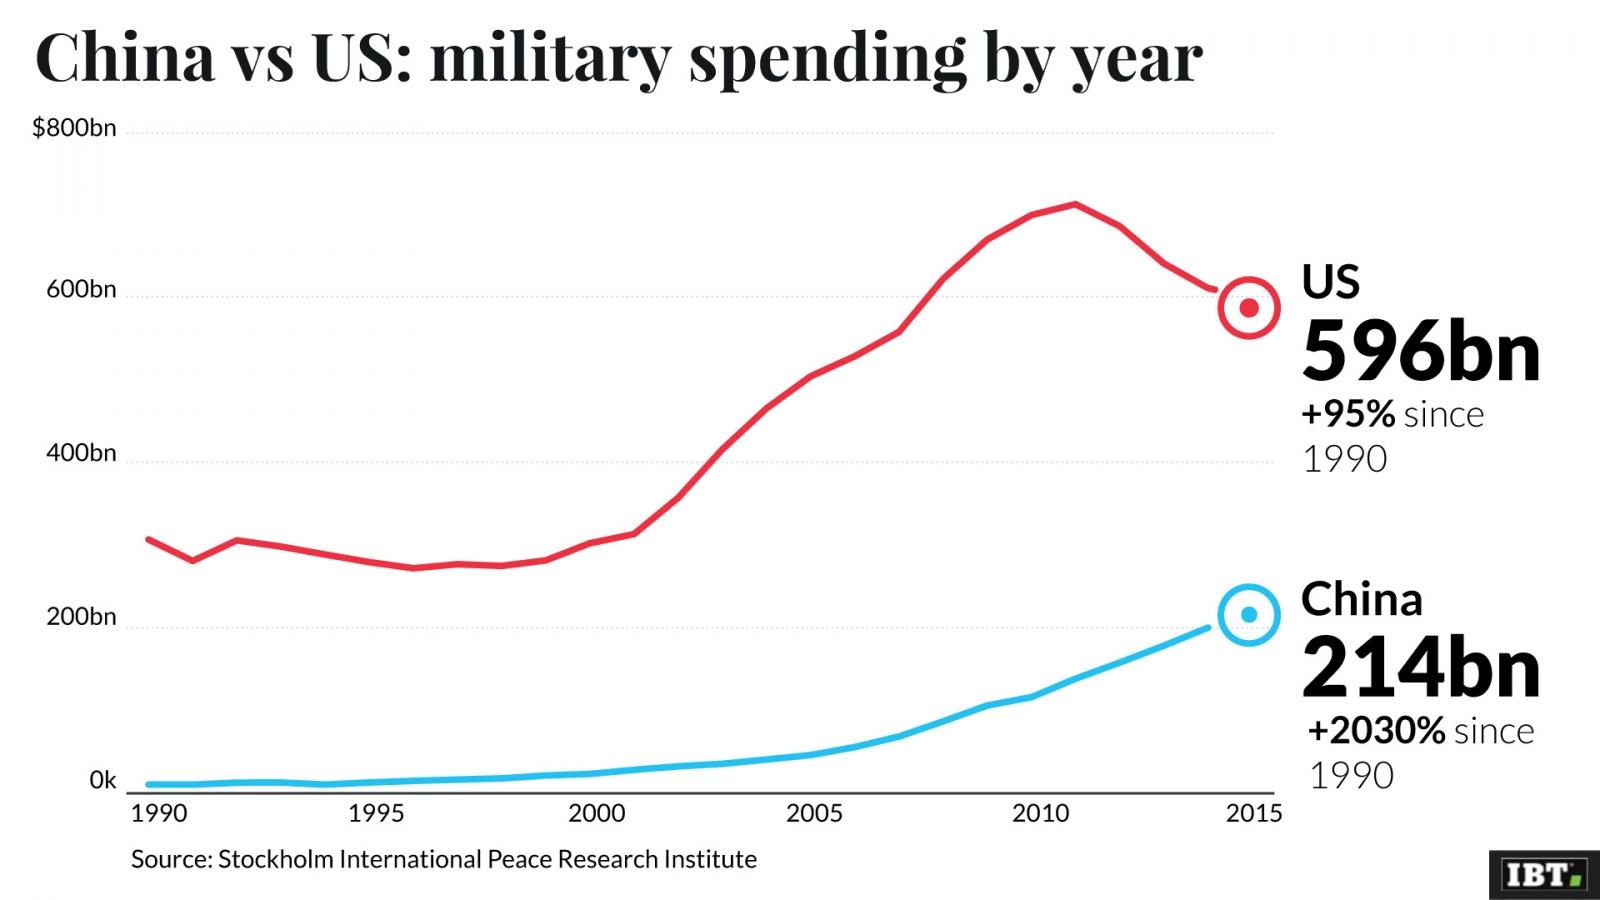 China vs US military spending